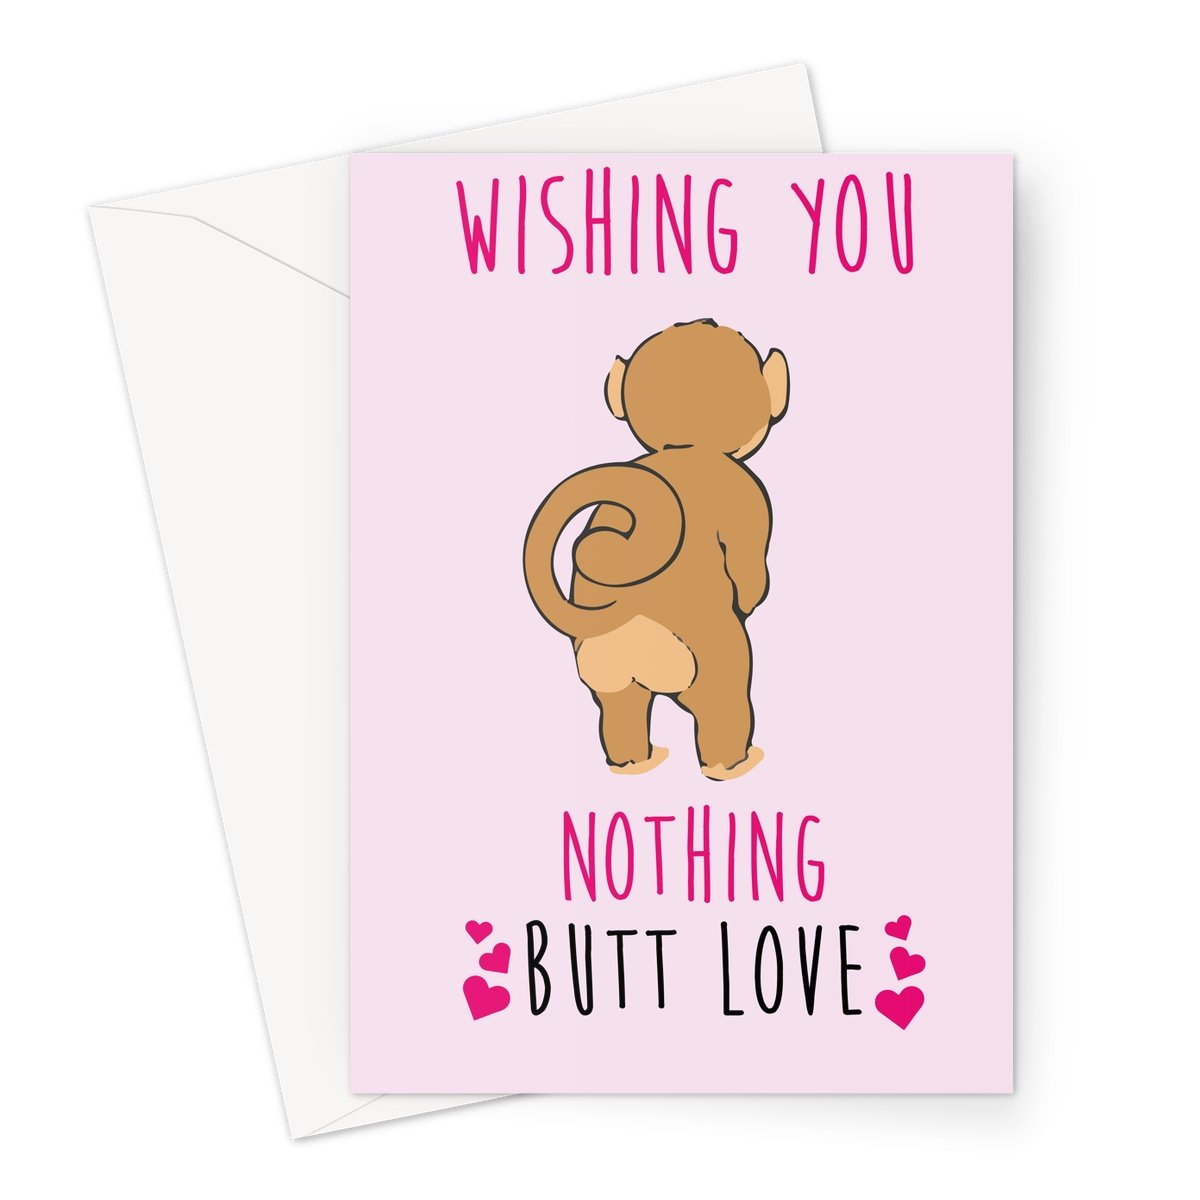 Nothing Butt Love - Valentine's Day Card